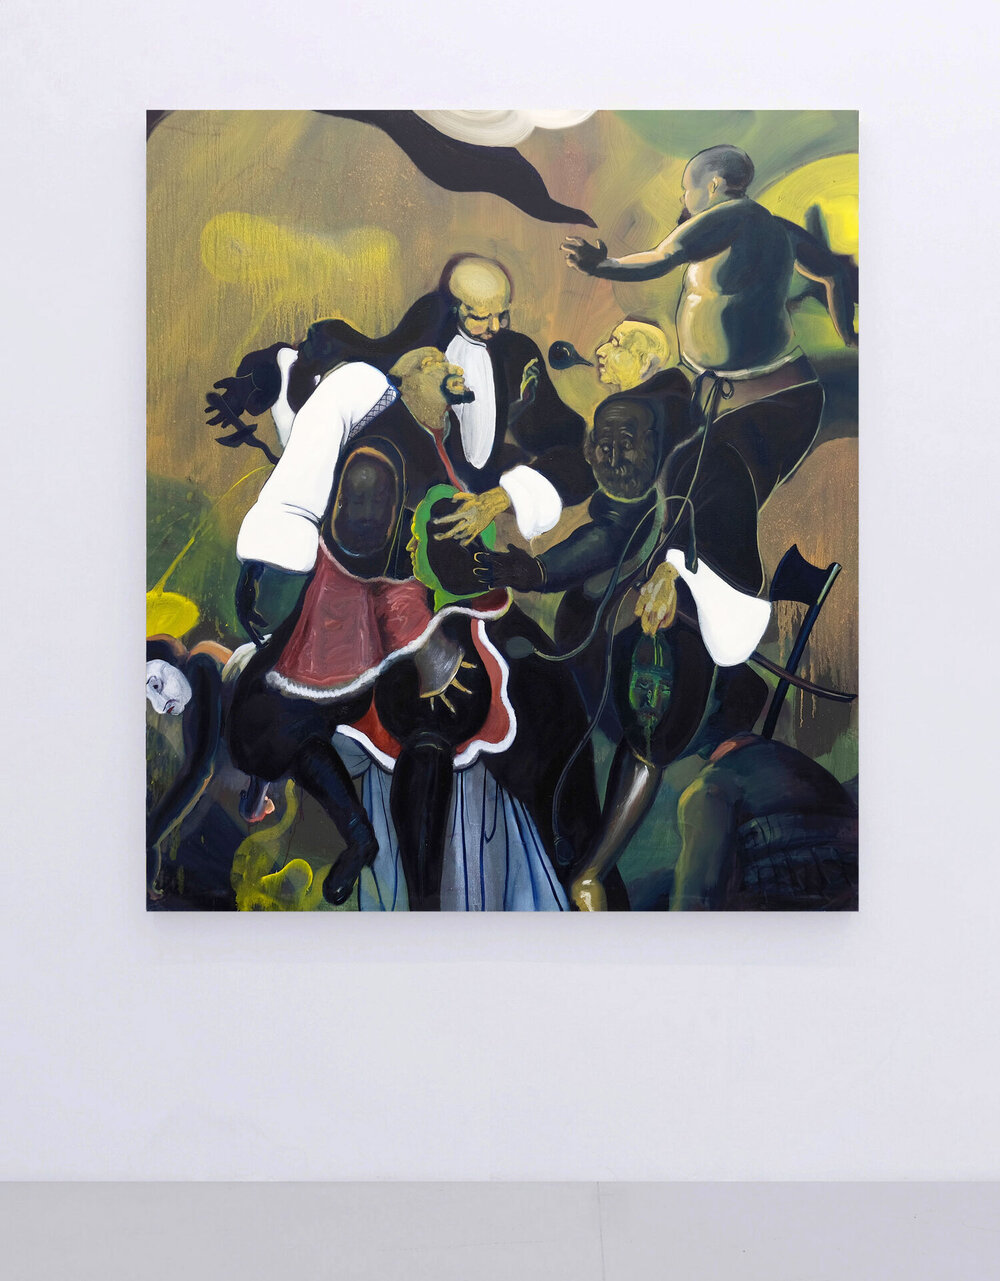 Conquistador & Co  (2017) Oil on canvas, 155 x 175cm